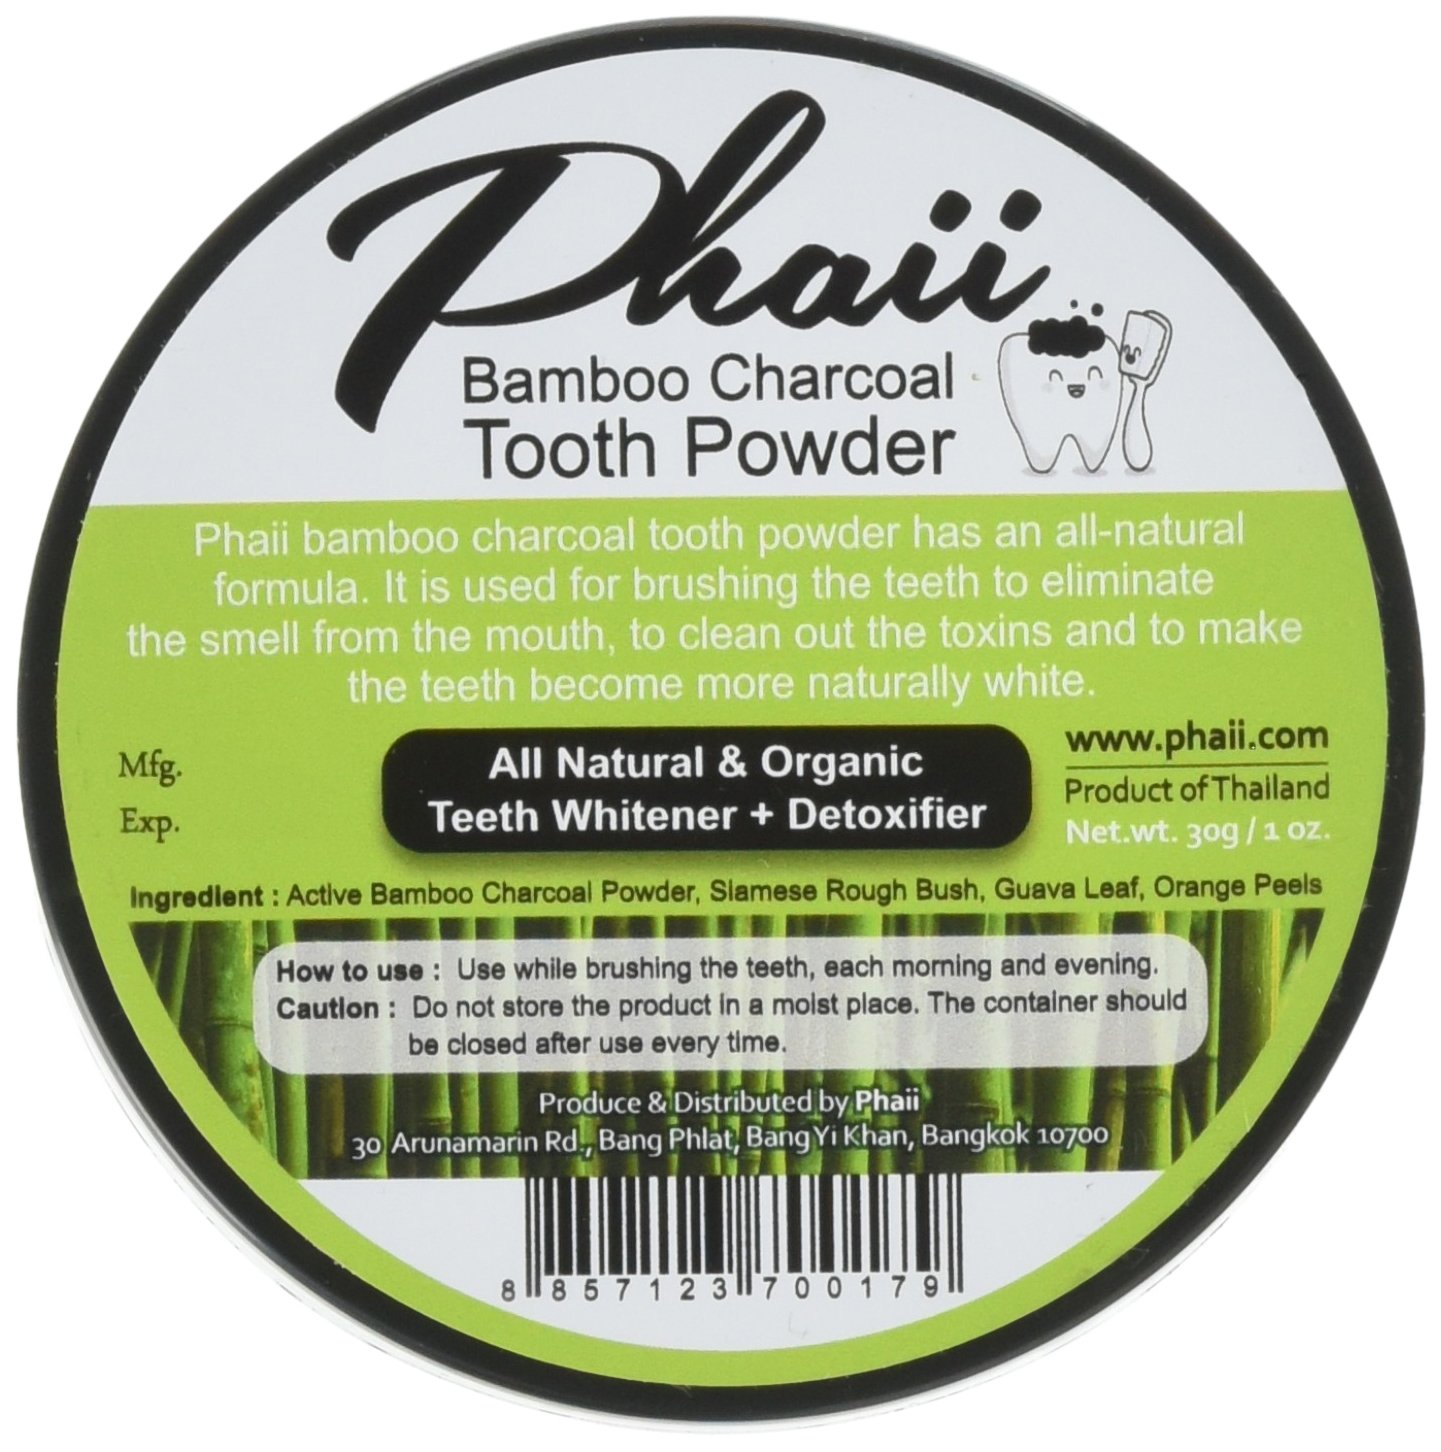 Natural Whitening Teeth & Gum Powder - Improve Mouth Hygiene, Whitens, Desensitizes, Detoxifies- Remove Toxins & Bacteria with Bamboo Activated Charcoal, Guava Leaf, Orange Peels - For Daily Use